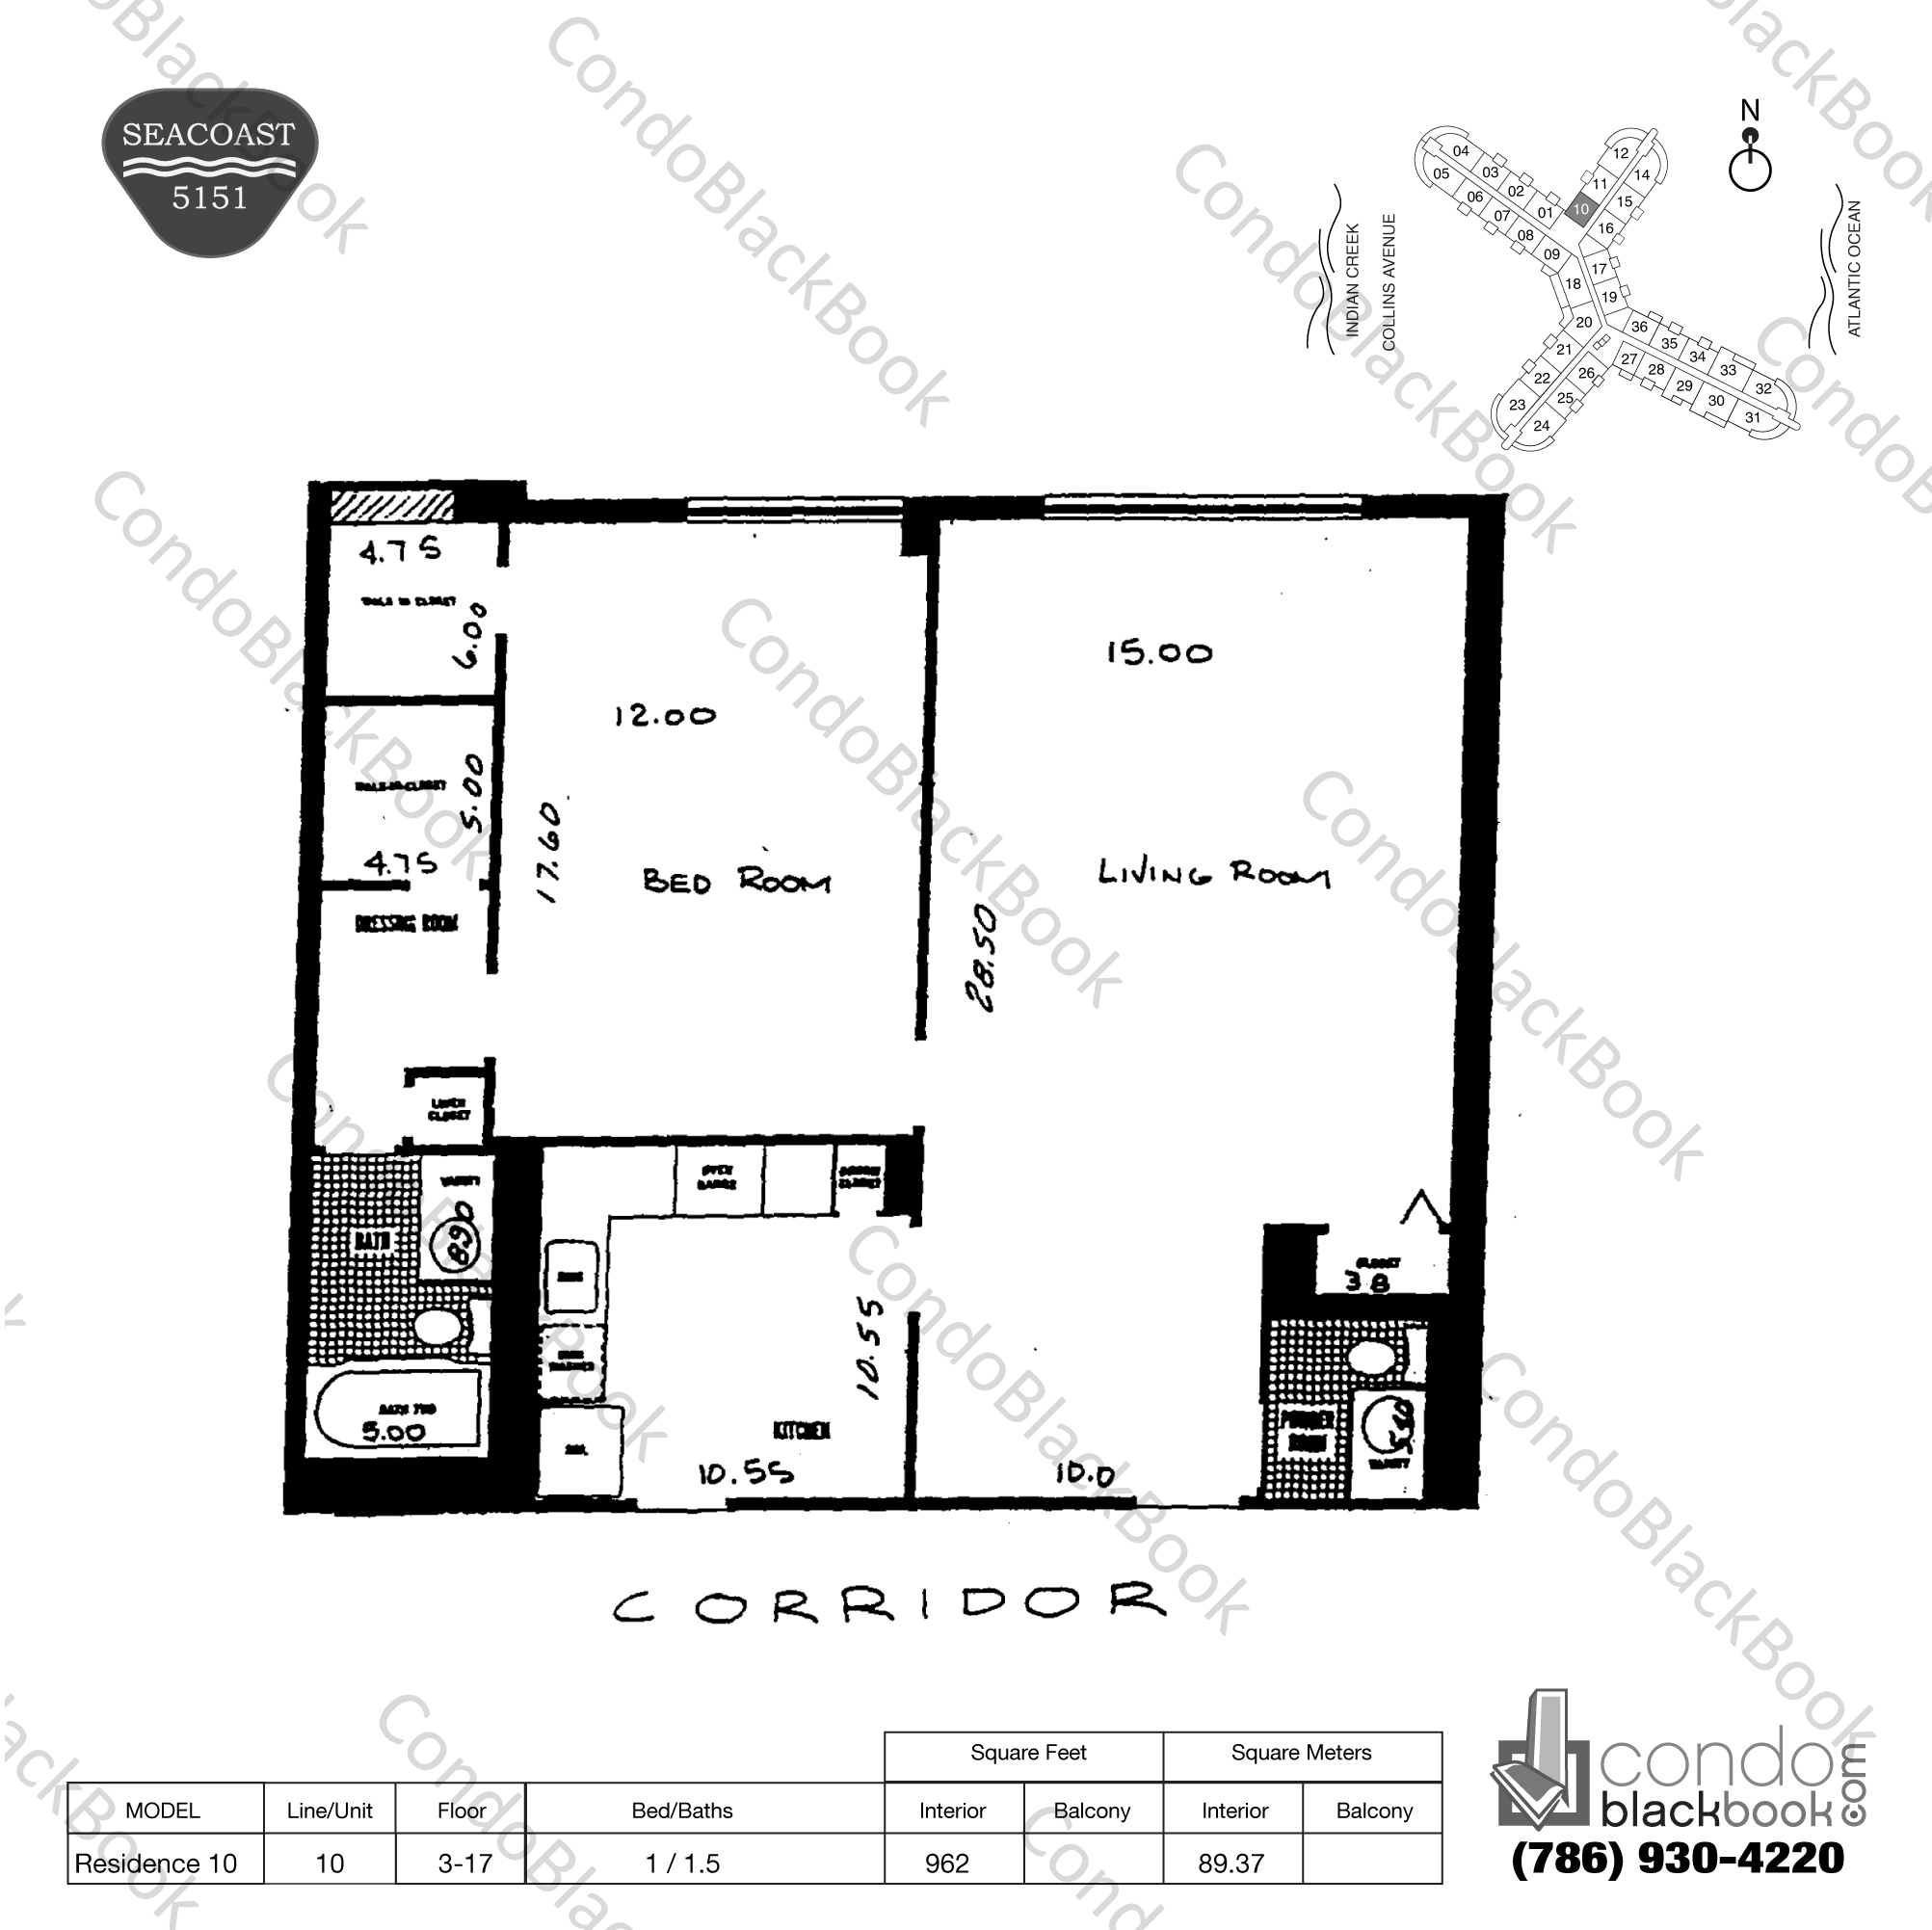 Floor plan for Seacoast 5151 Mid-Beach Miami Beach, model Residence 10, line 10, 1 / 1.5 bedrooms, 962 sq ft